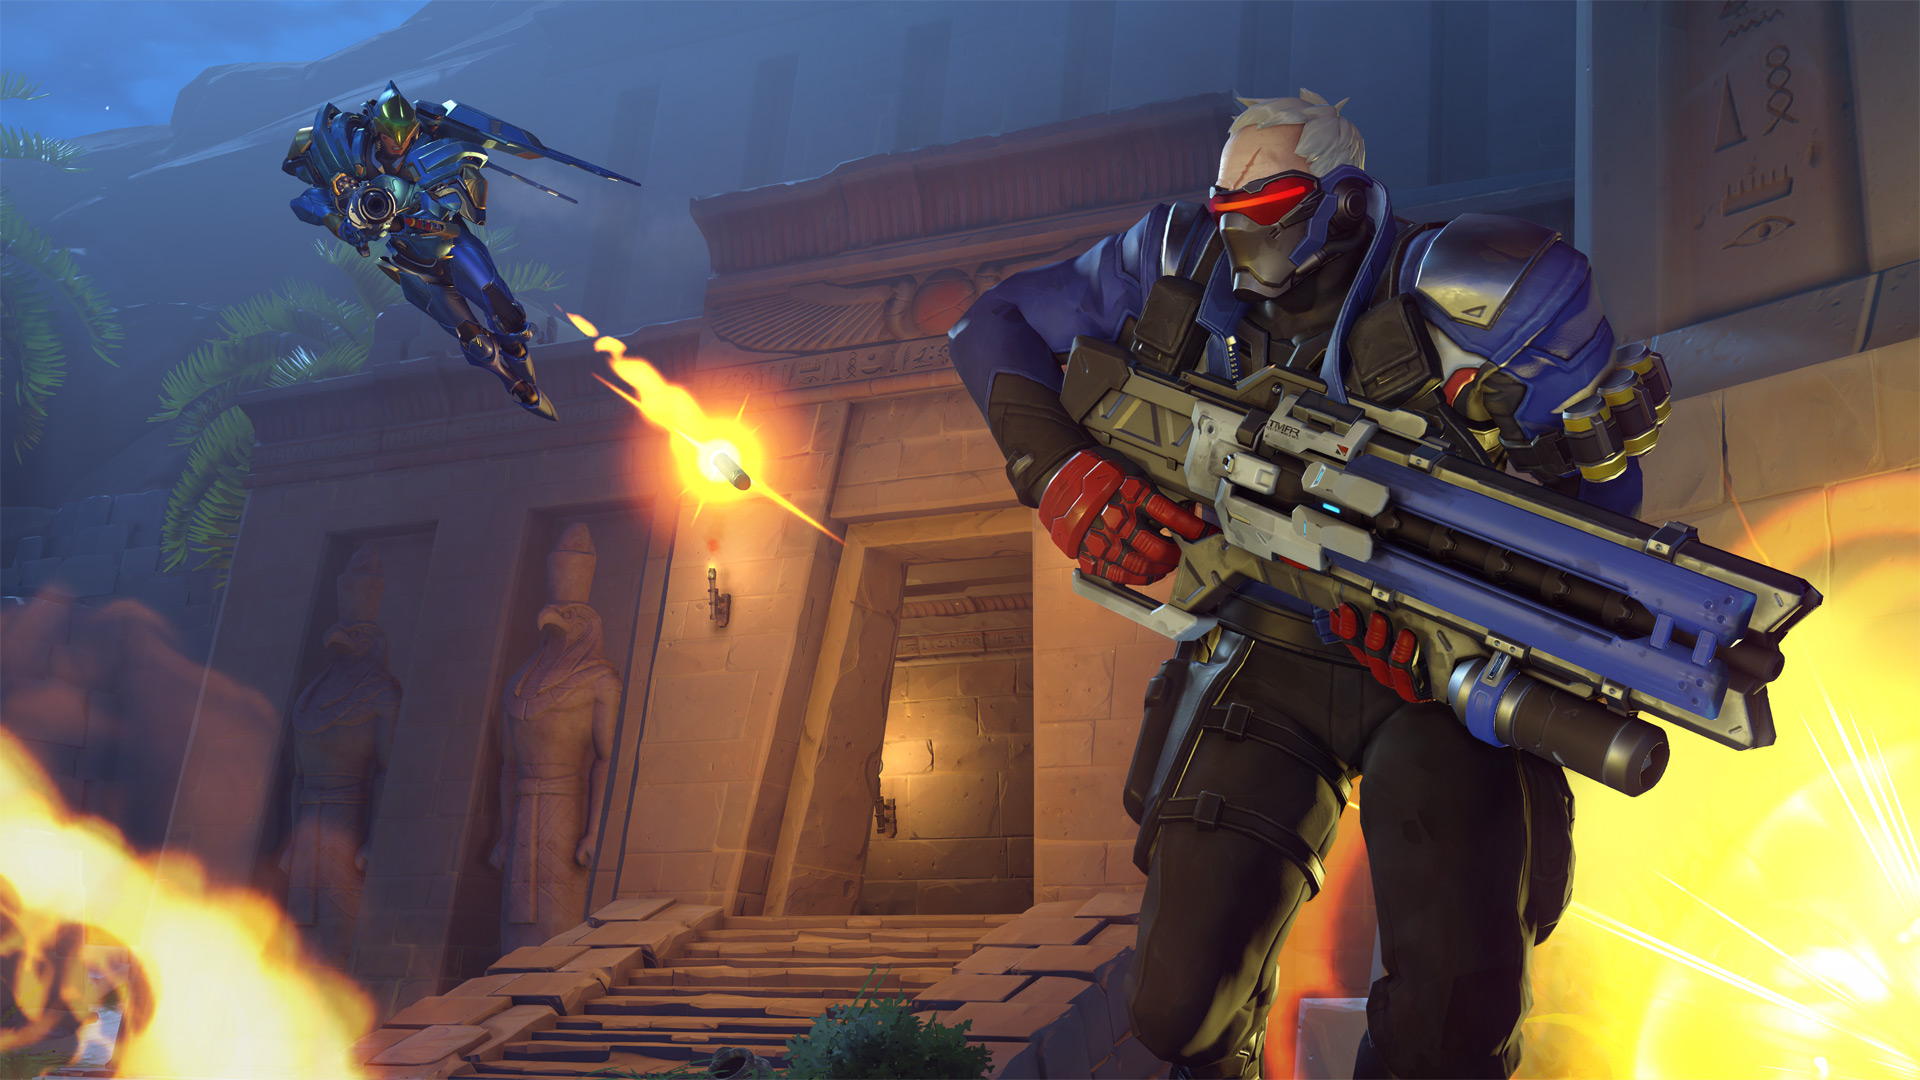 Blizzard might have accidentally revealed some weapon skins coming to Overwatch